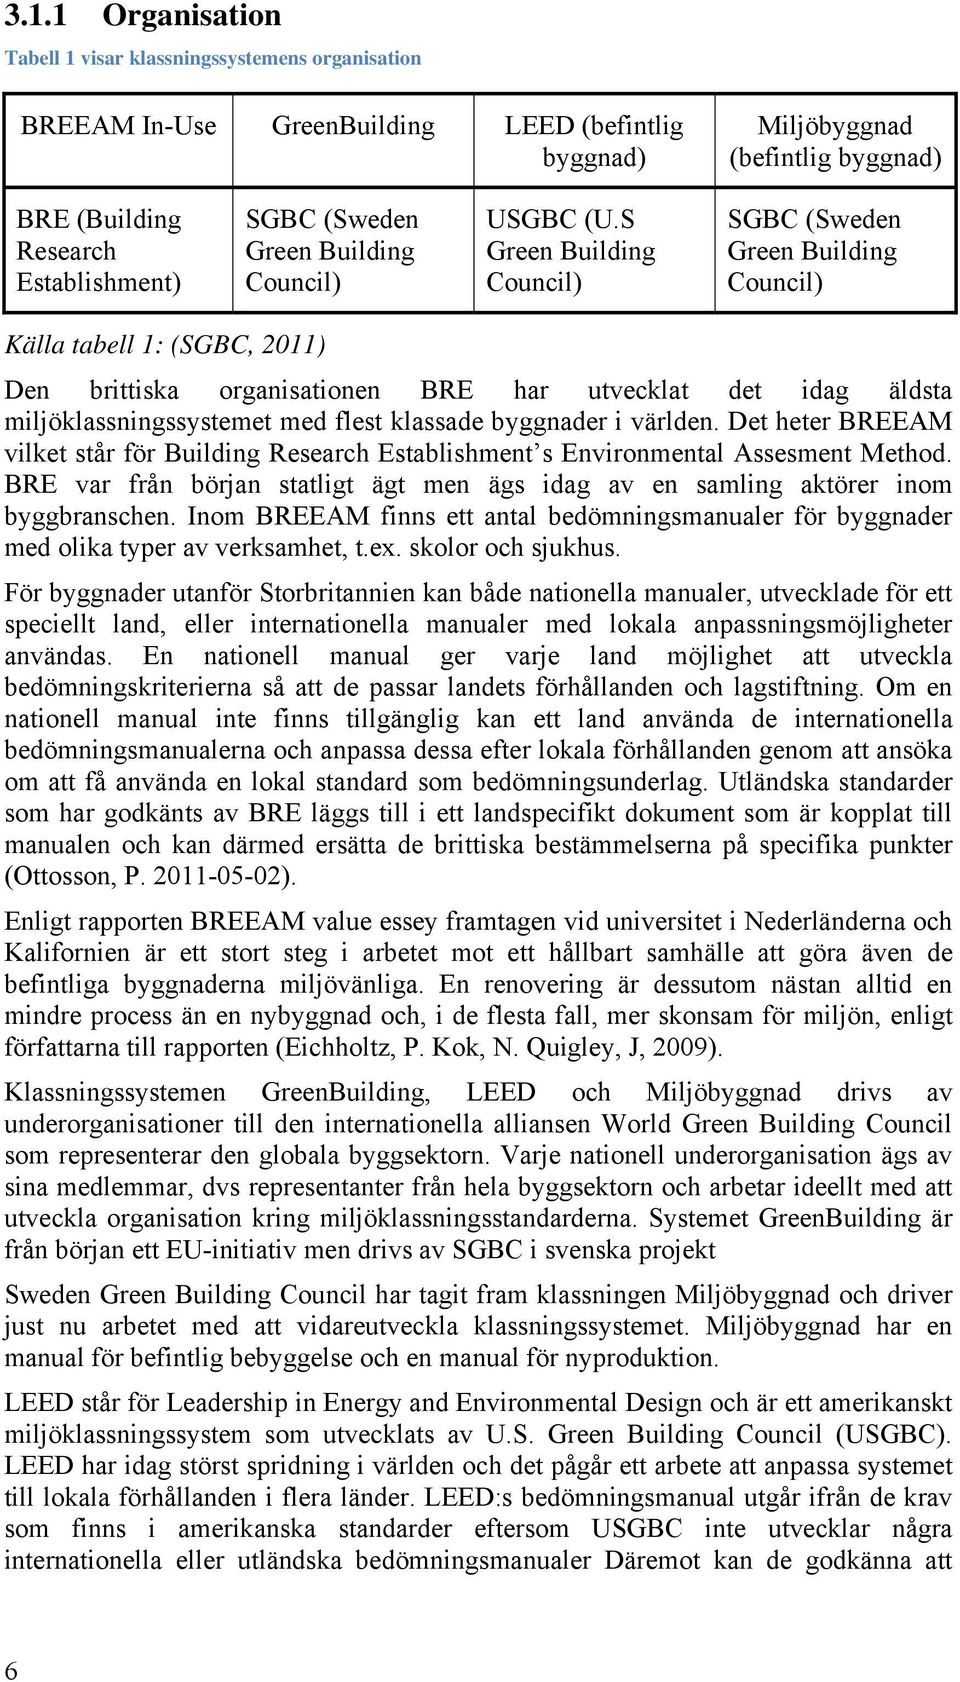 S Green Building Council) SGBC (Sweden Green Building Council) Källa tabell 1: (SGBC, 2011) Den brittiska organisationen BRE har utvecklat det idag äldsta miljöklassningssystemet med flest klassade